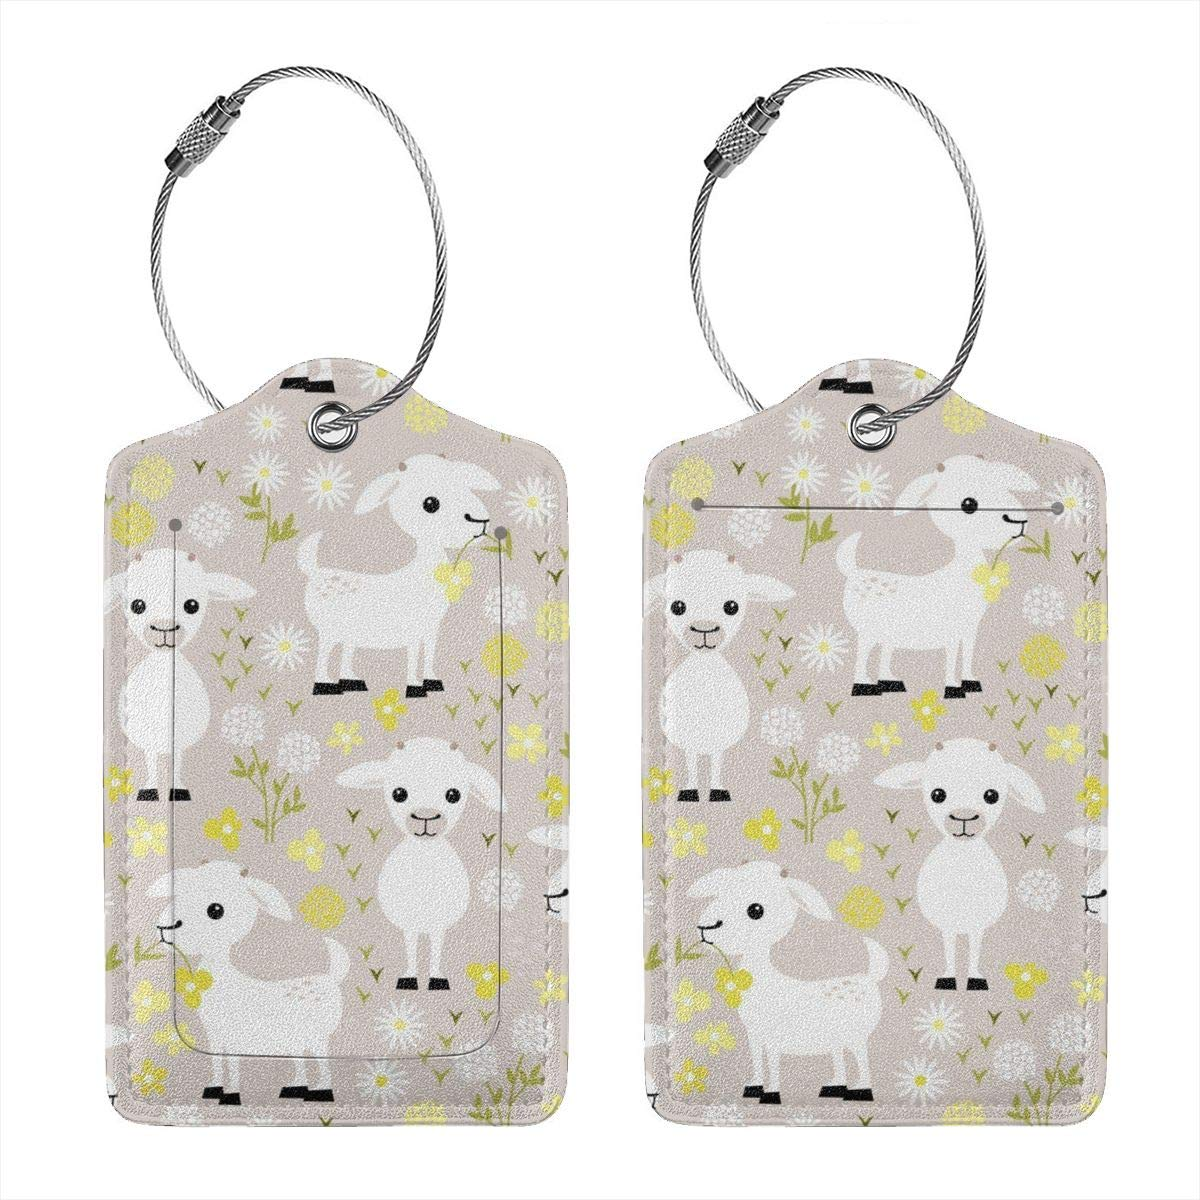 Baby Goats Luggage Tag Label Travel Bag Label With Privacy Cover Luggage Tag Leather Personalized Suitcase Tag Travel Accessories